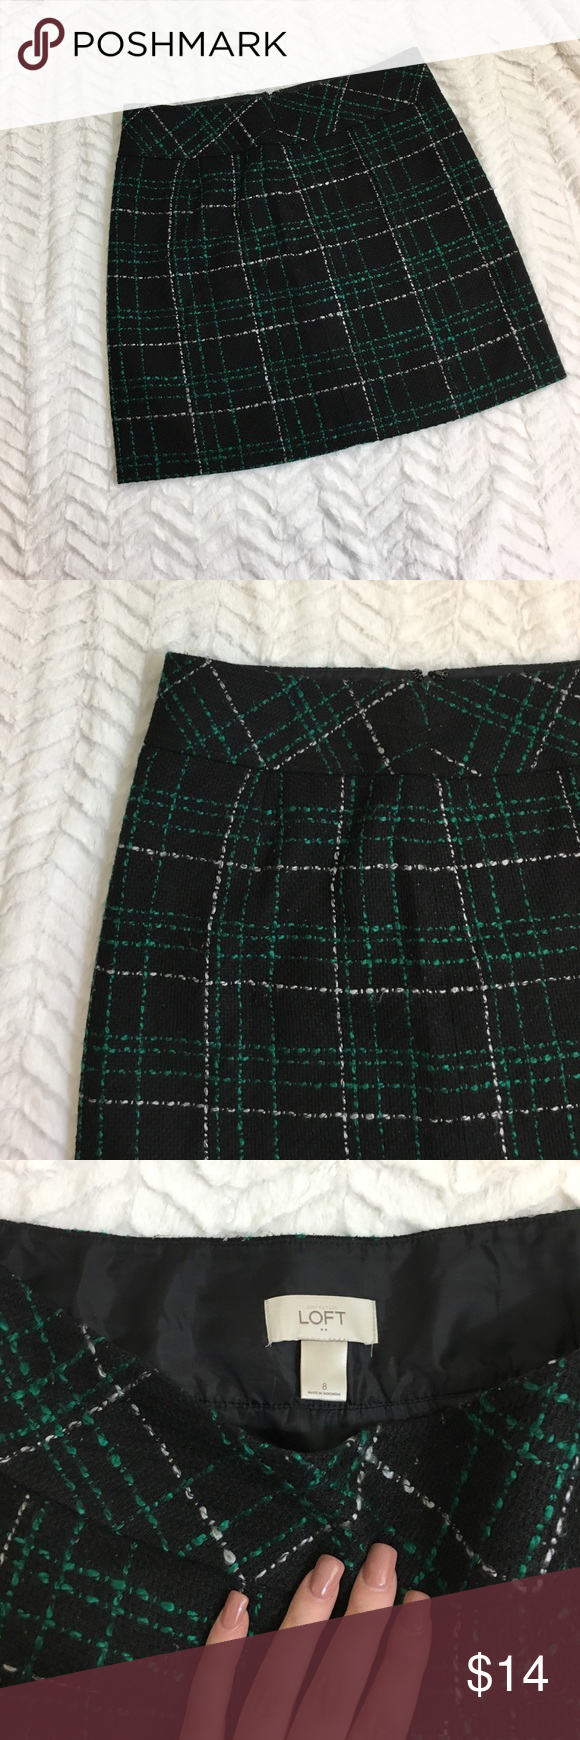 loft green skirt. loft green and white pencil skirt super cute size 8. black plaid